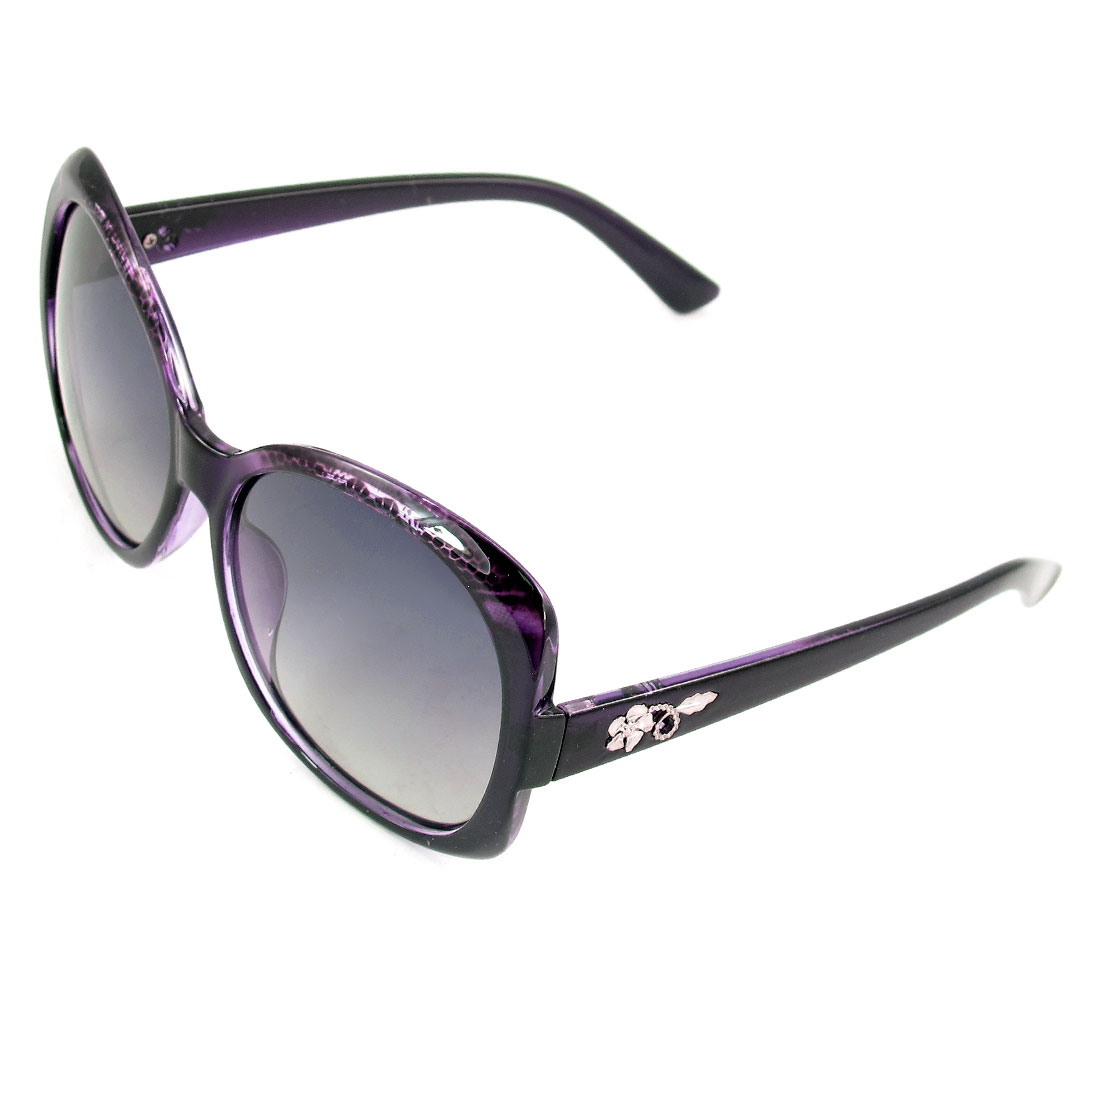 Woman Burgundy Rimmed Gradient Lens Oversized Eyeglasses Polarized Sunglasses